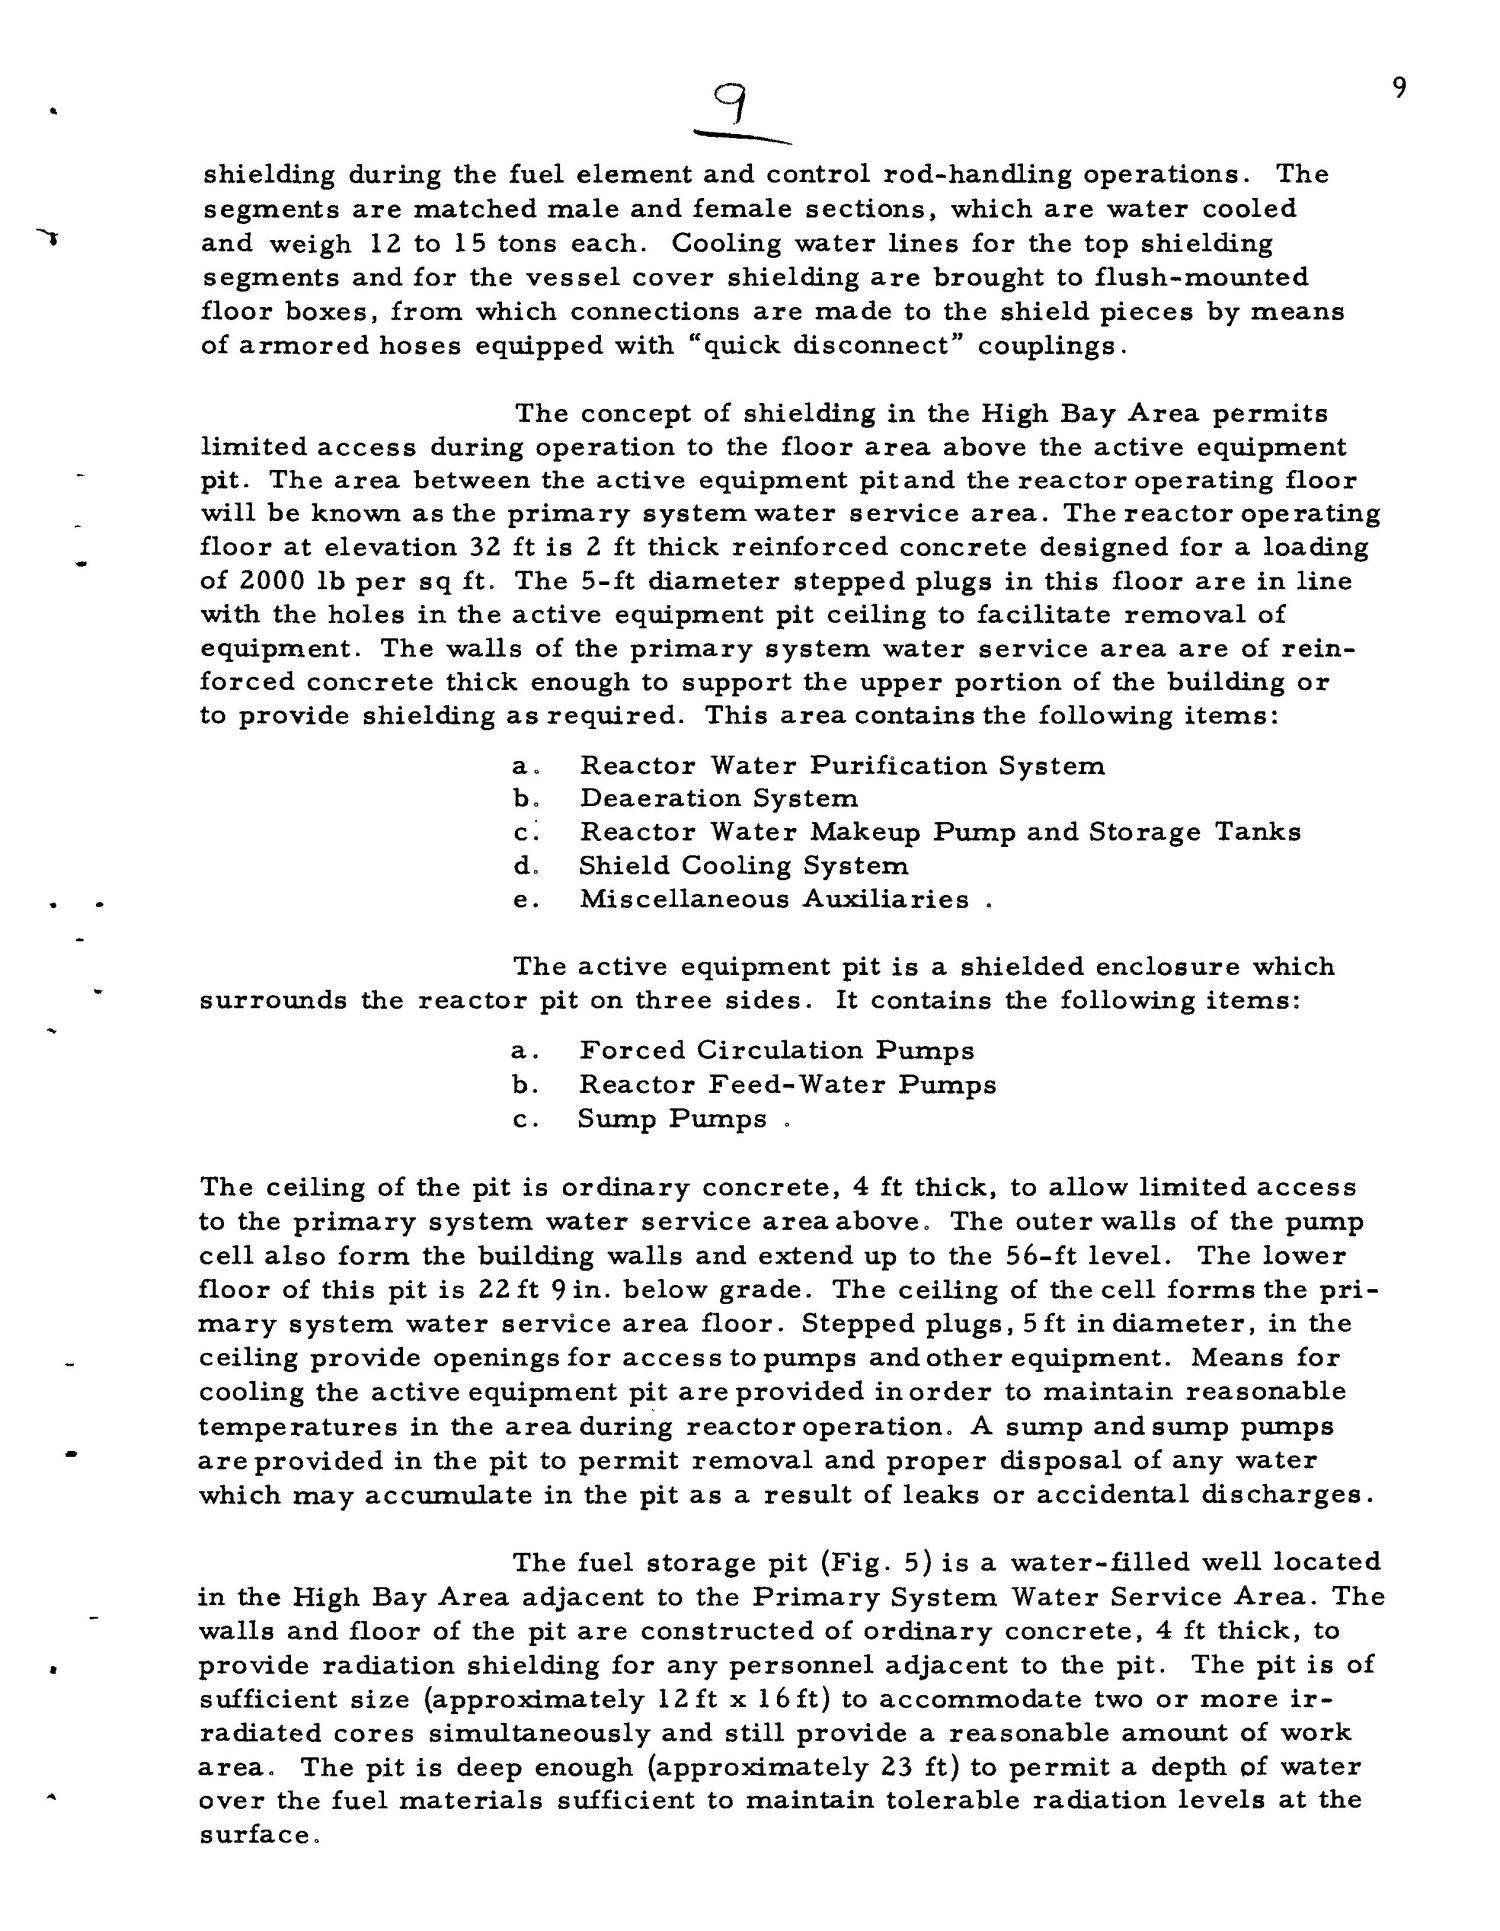 PRELIMINARY DESIGN REQUIREMENTS ARGONNE BOILING REACTOR (ARBOR) FACILITY. Revision I                                                                                                      [Sequence #]: 11 of 161